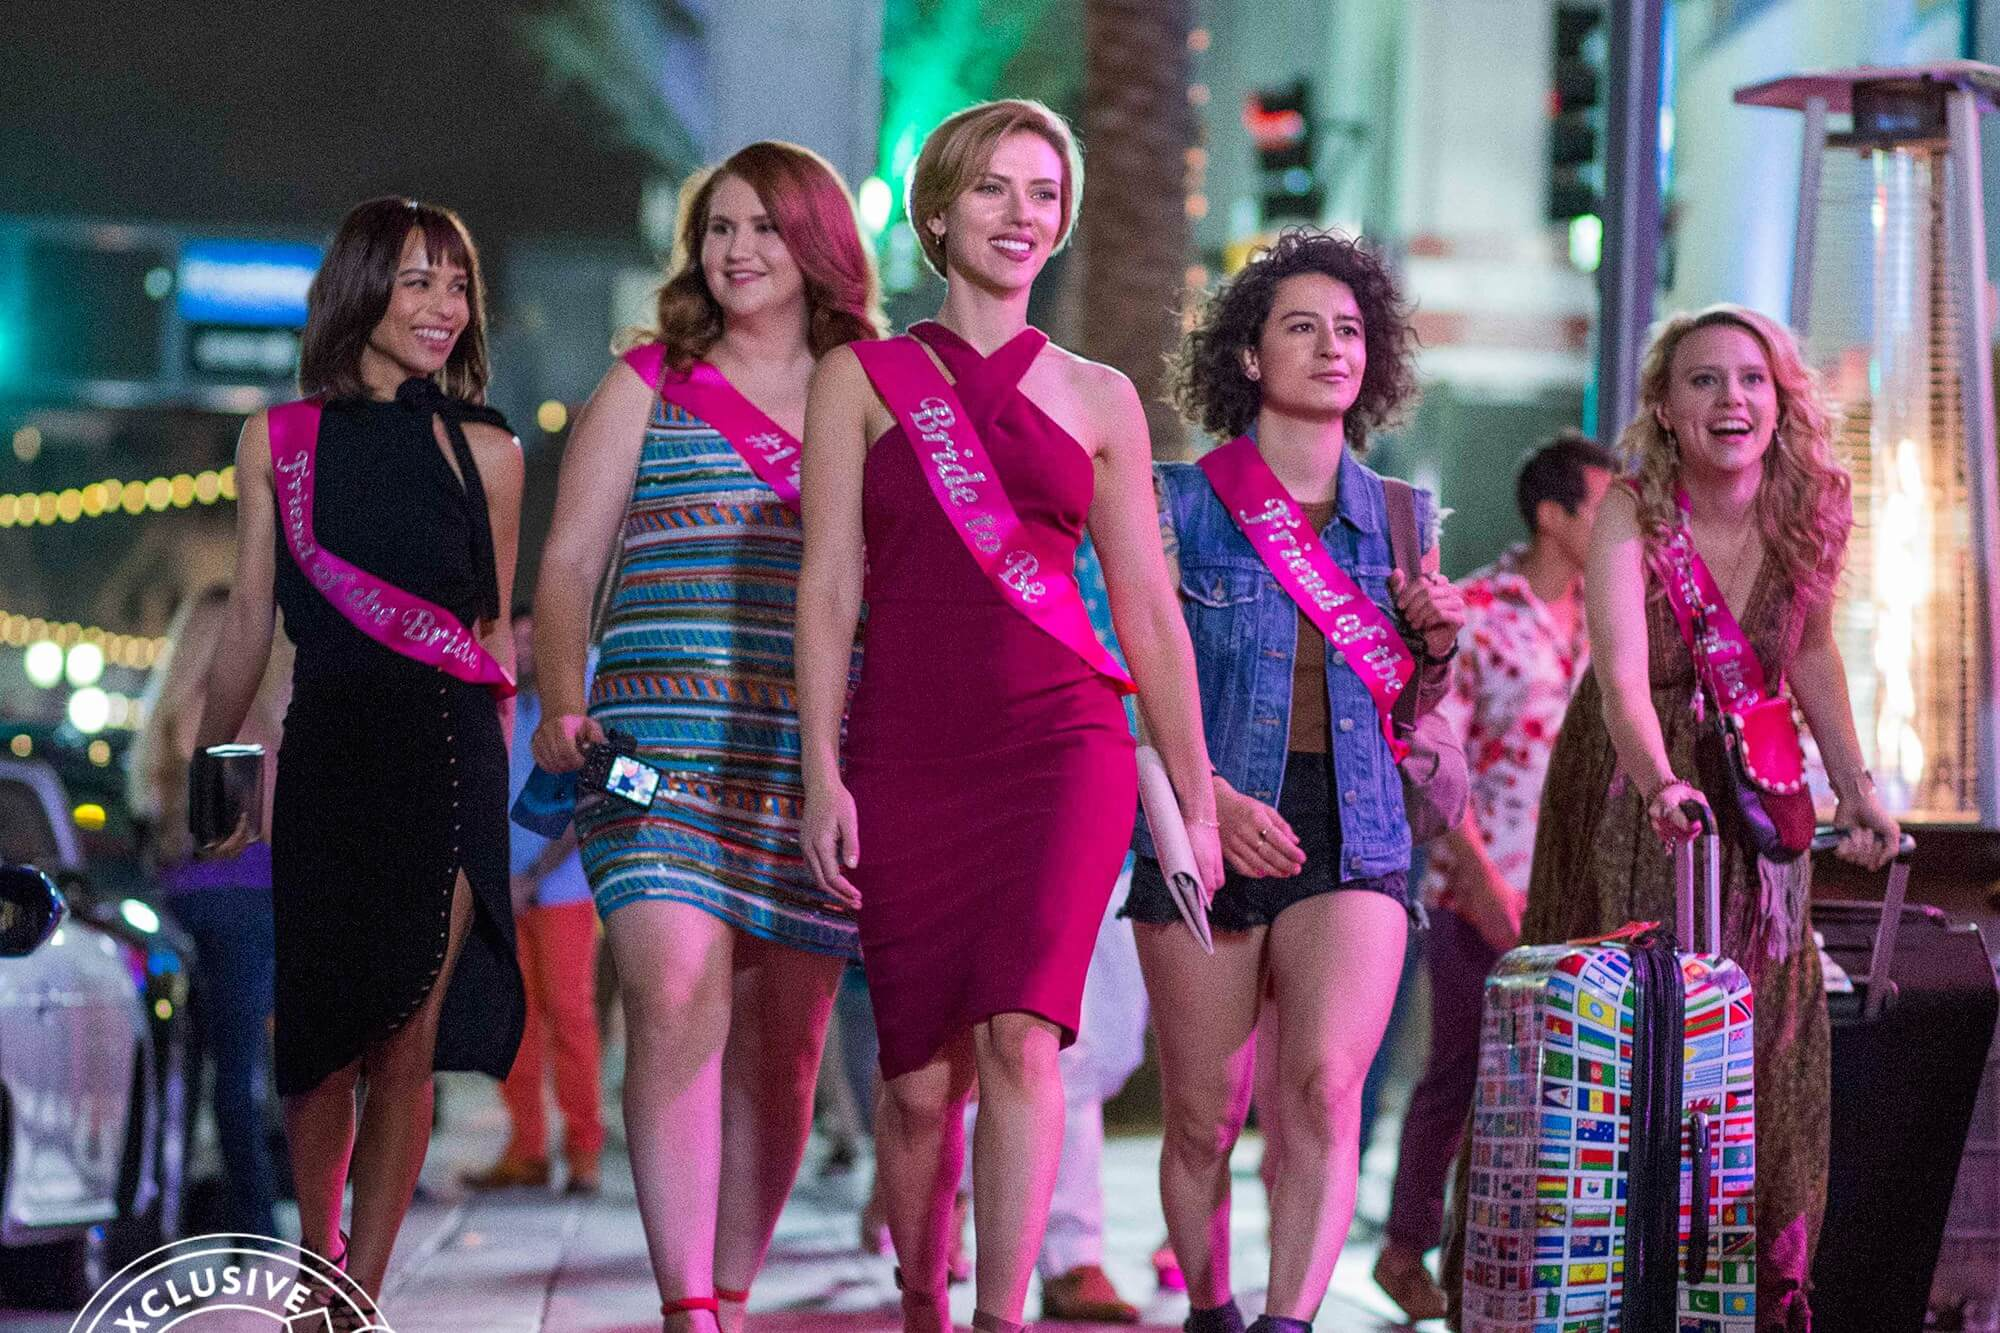 Scarlett Johansson's Bachelorette Party Turns Disastrous In Rough Night [Trailer]